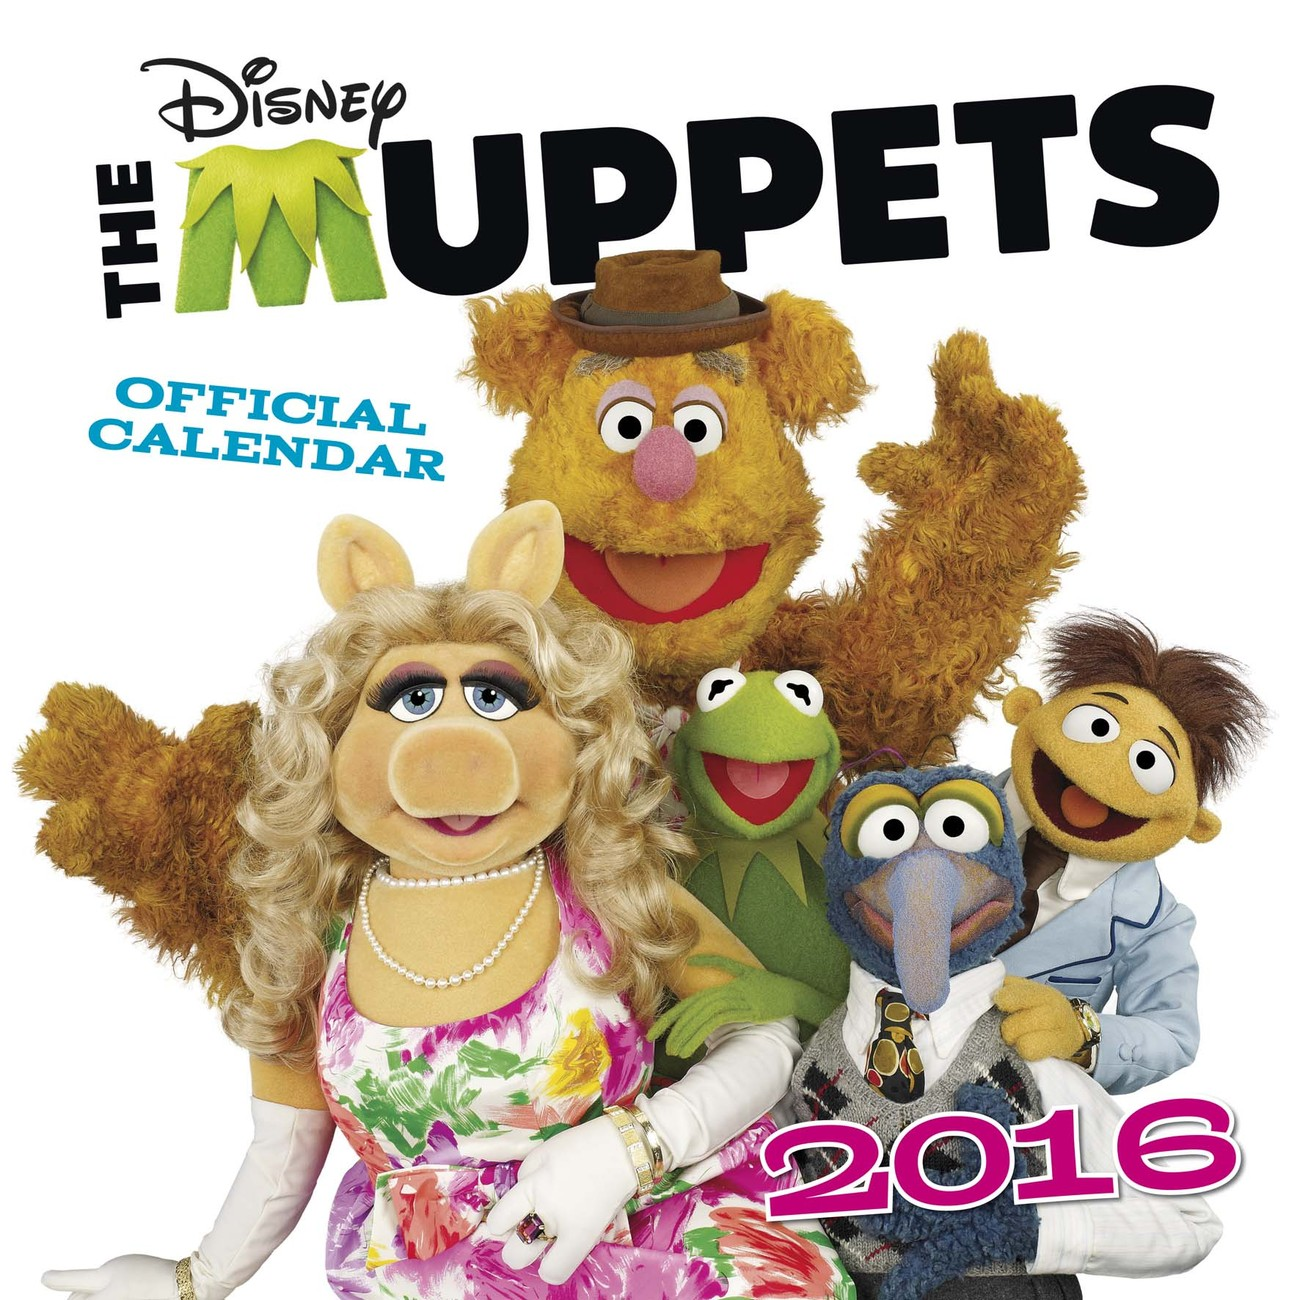 The Muppets - Calendars 2019 on UKposters/Abposters.com